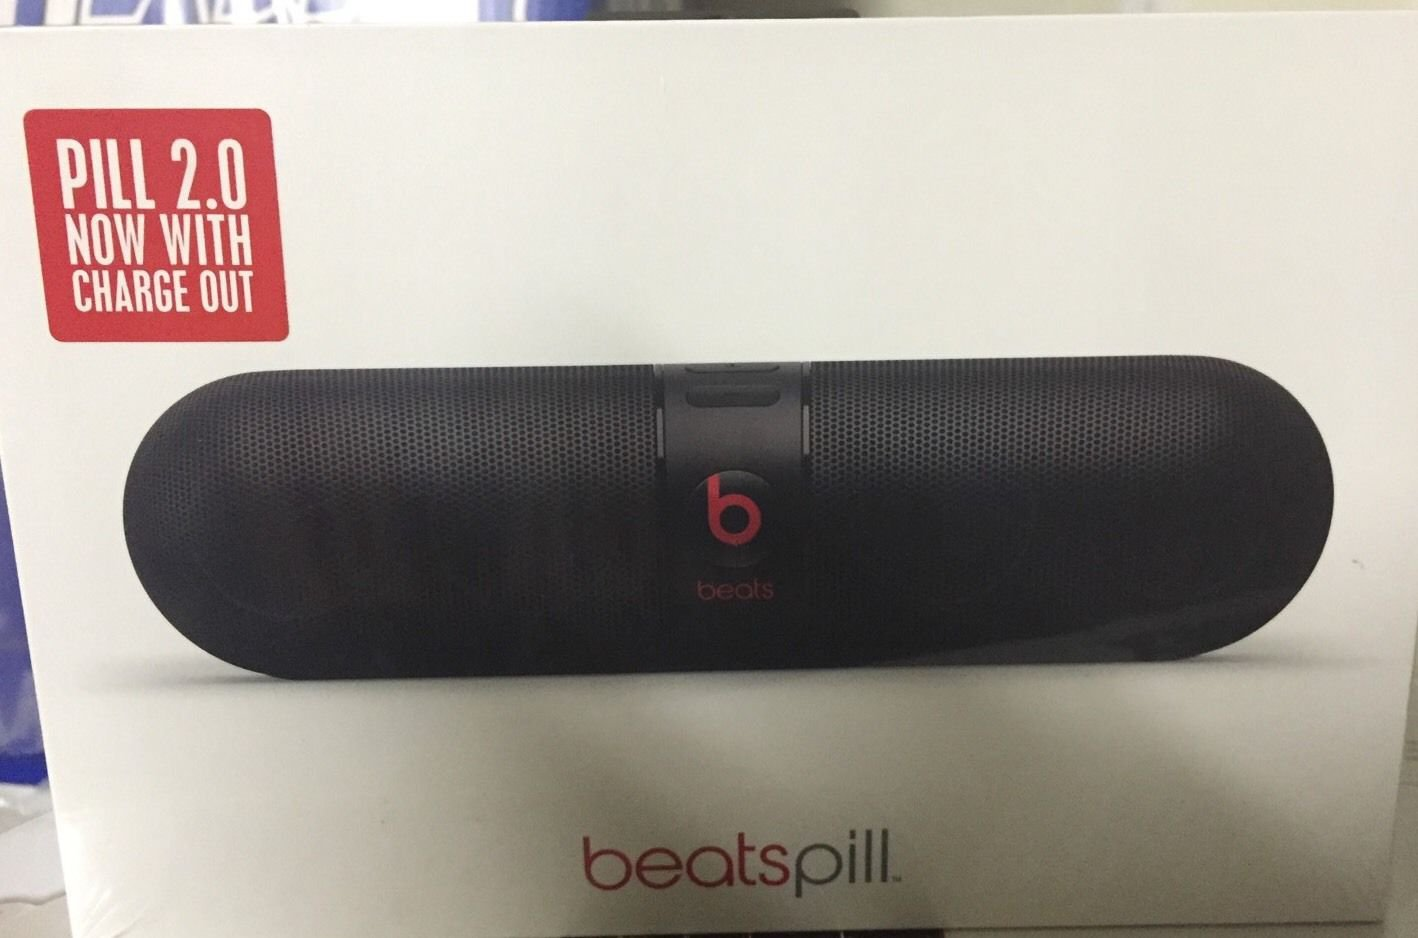 Beats Pill 2.0 By Dr. Dre Wireless Bluetooth Speaker Black (Factory Sealed/New)